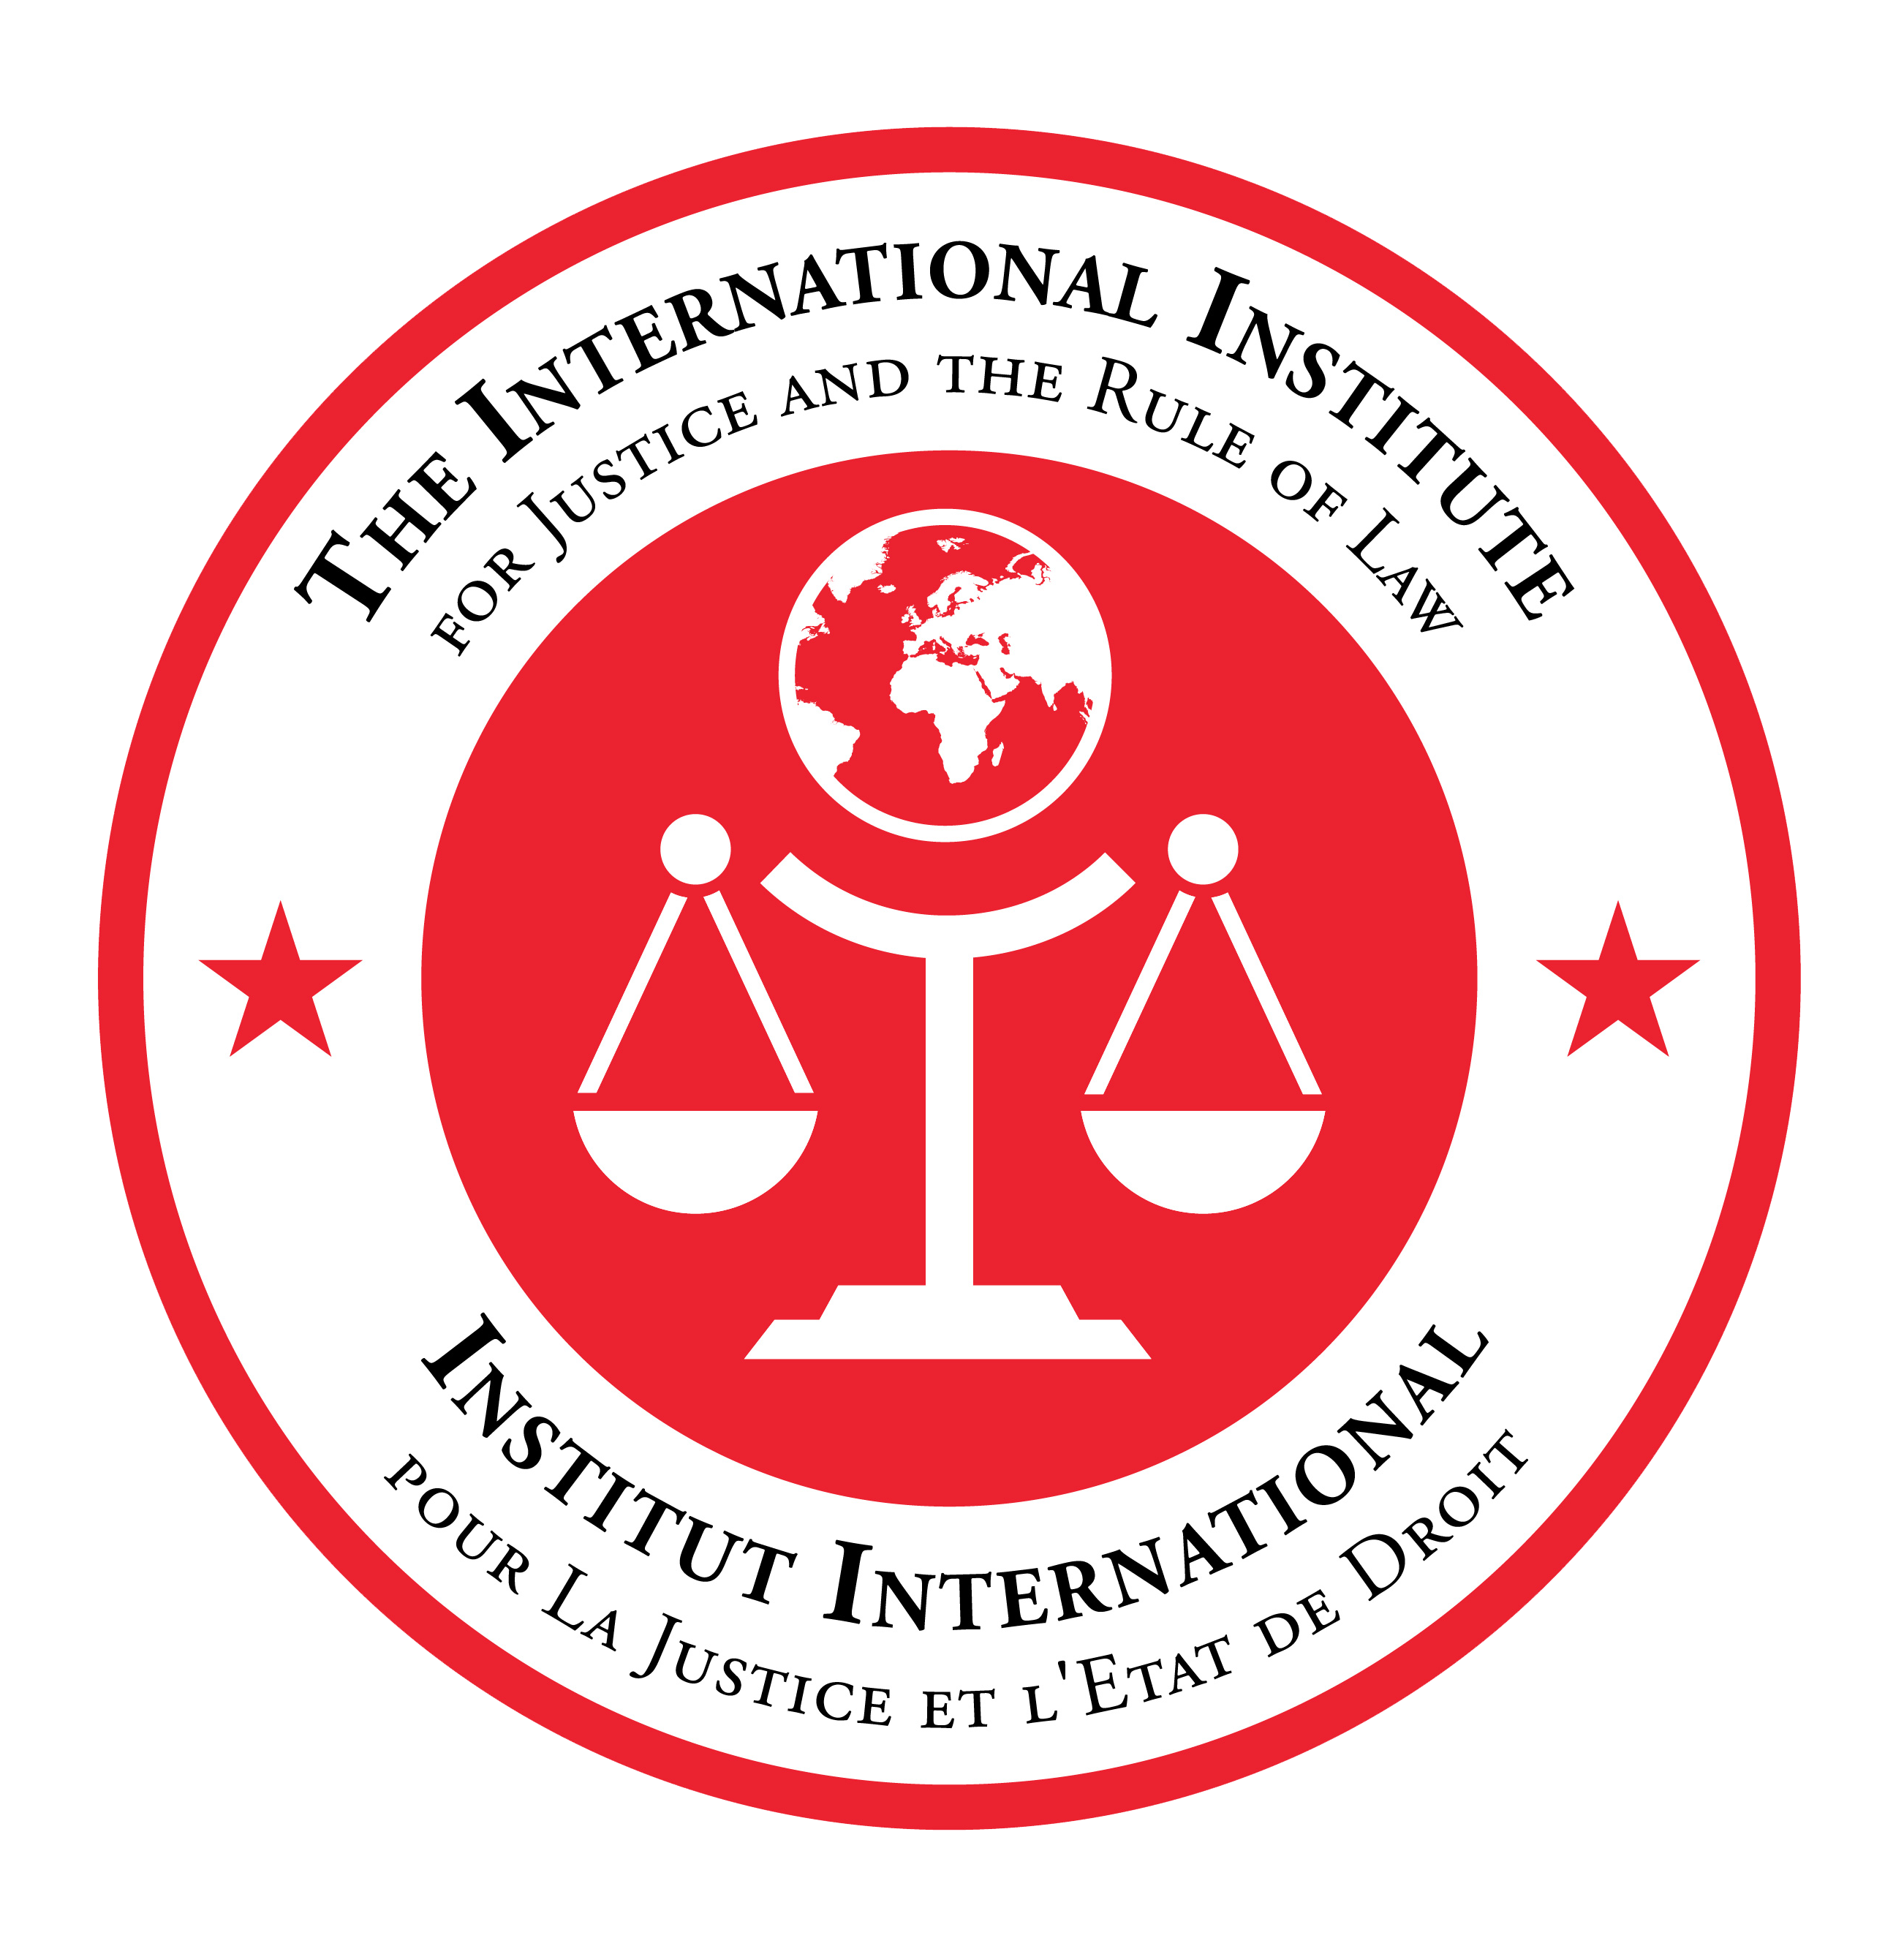 The International Institute for Justice